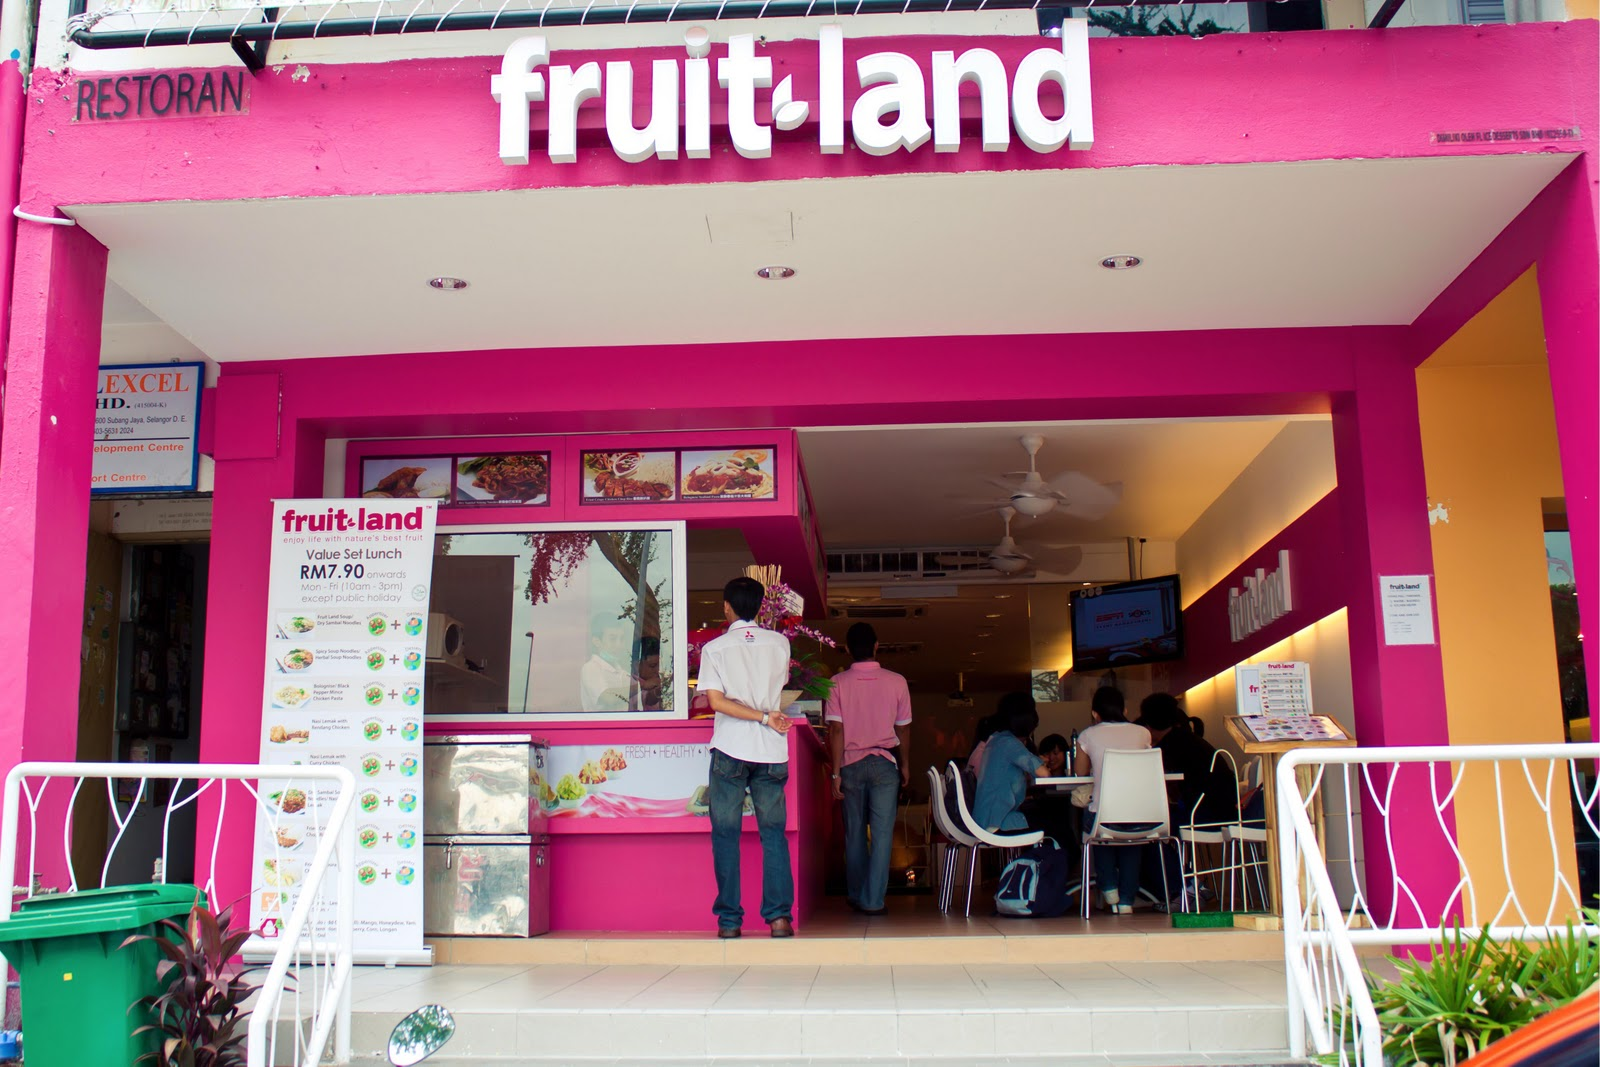 fruitland girls Fruitland park's best 100% free online dating site meet loads of available single women in fruitland park with mingle2's fruitland park dating services find a girlfriend or lover in fruitland park, or just have fun flirting online with fruitland park single girls.